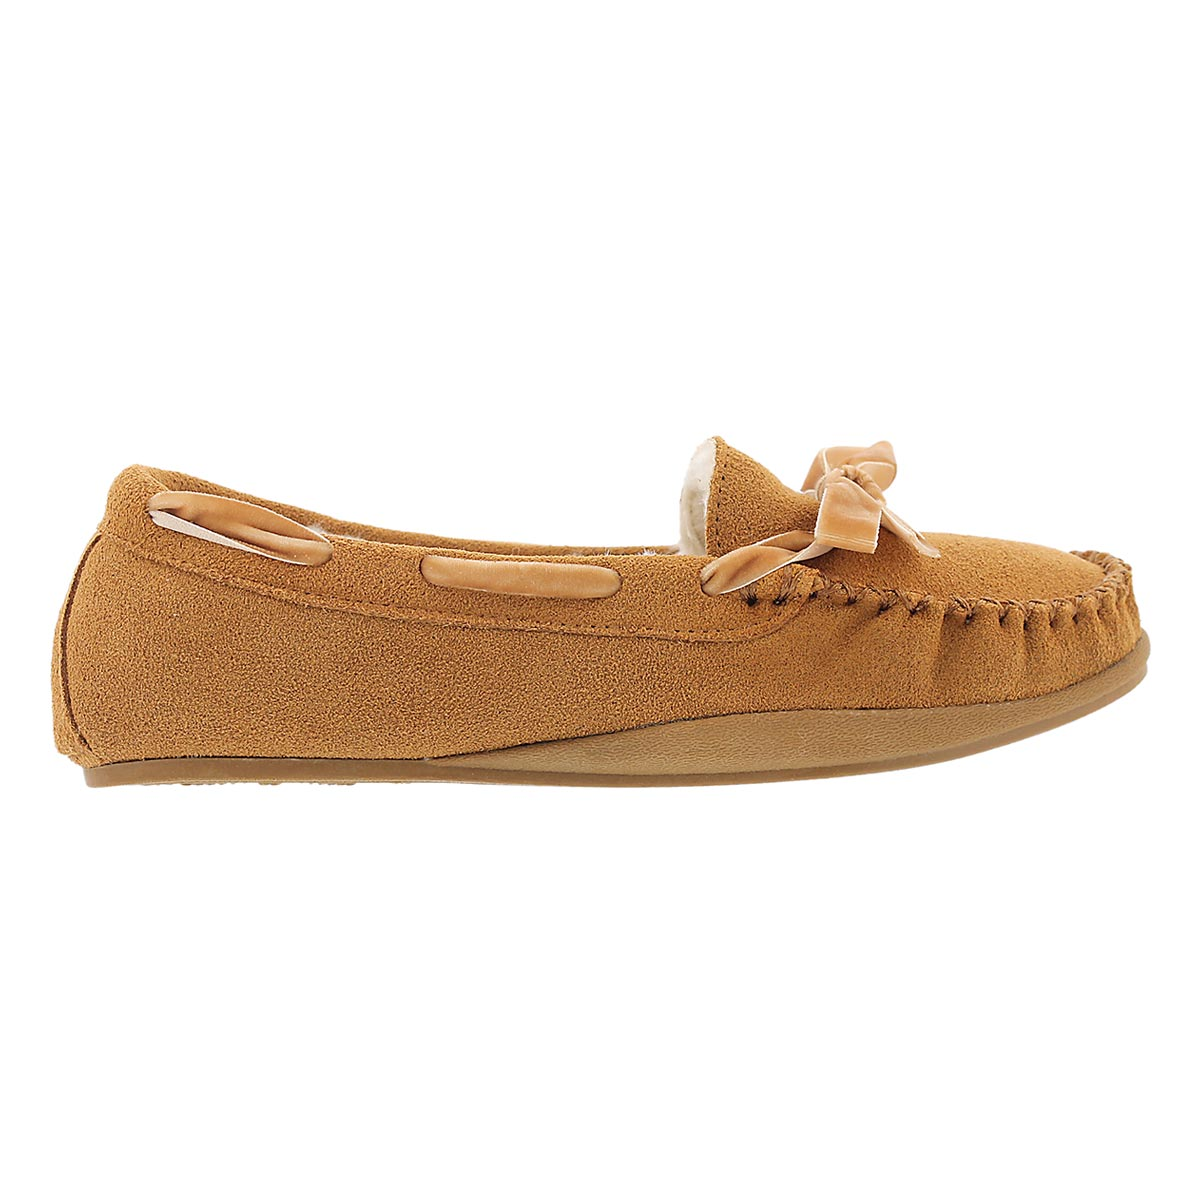 Lds Rochelle tan suede moccasin